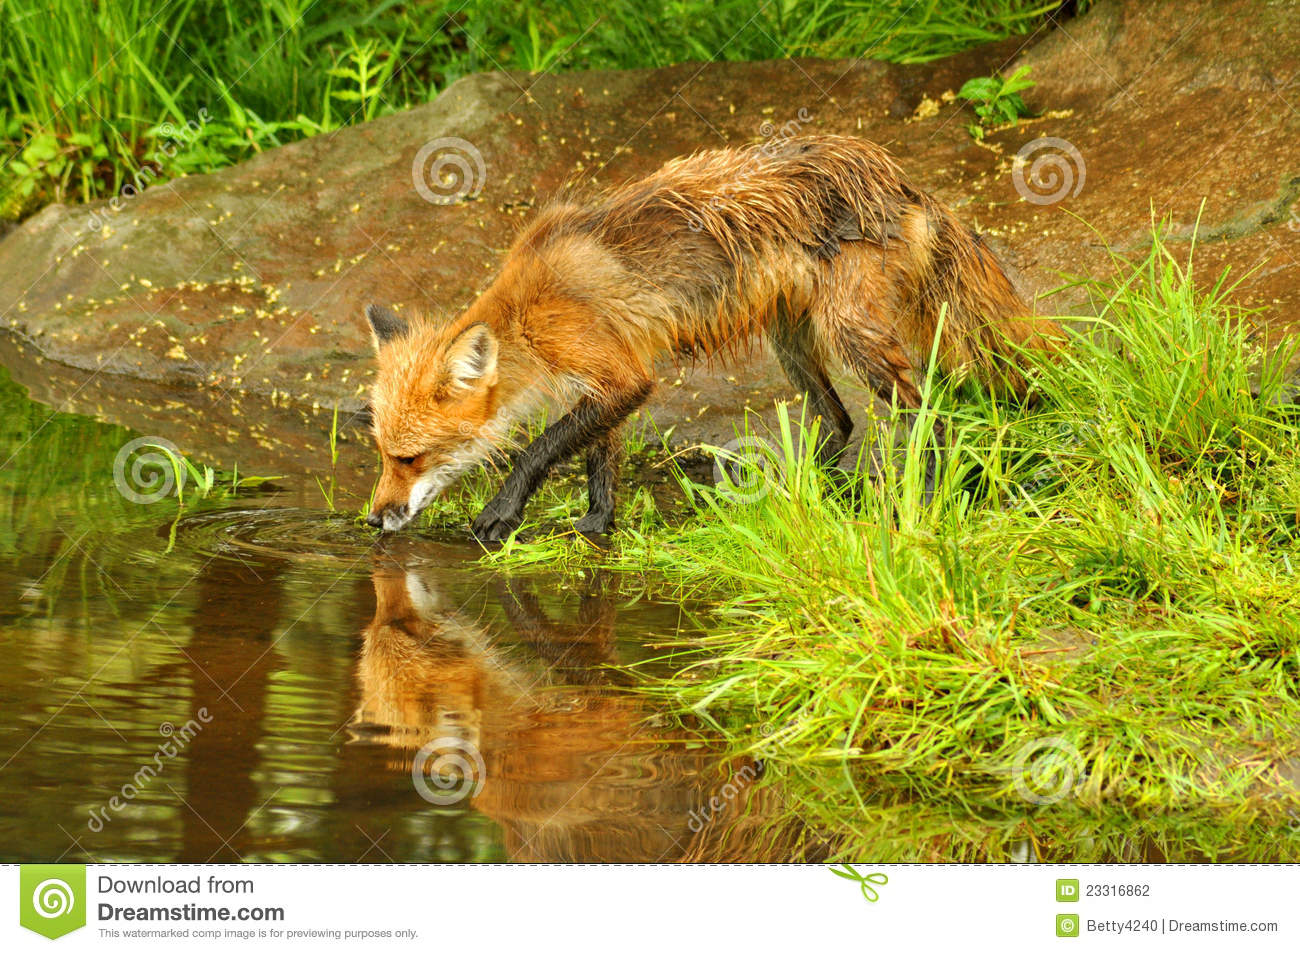 Summer Reflections Collections >> Reflection Of A Lone Red Fox Drinking Water Stock ...